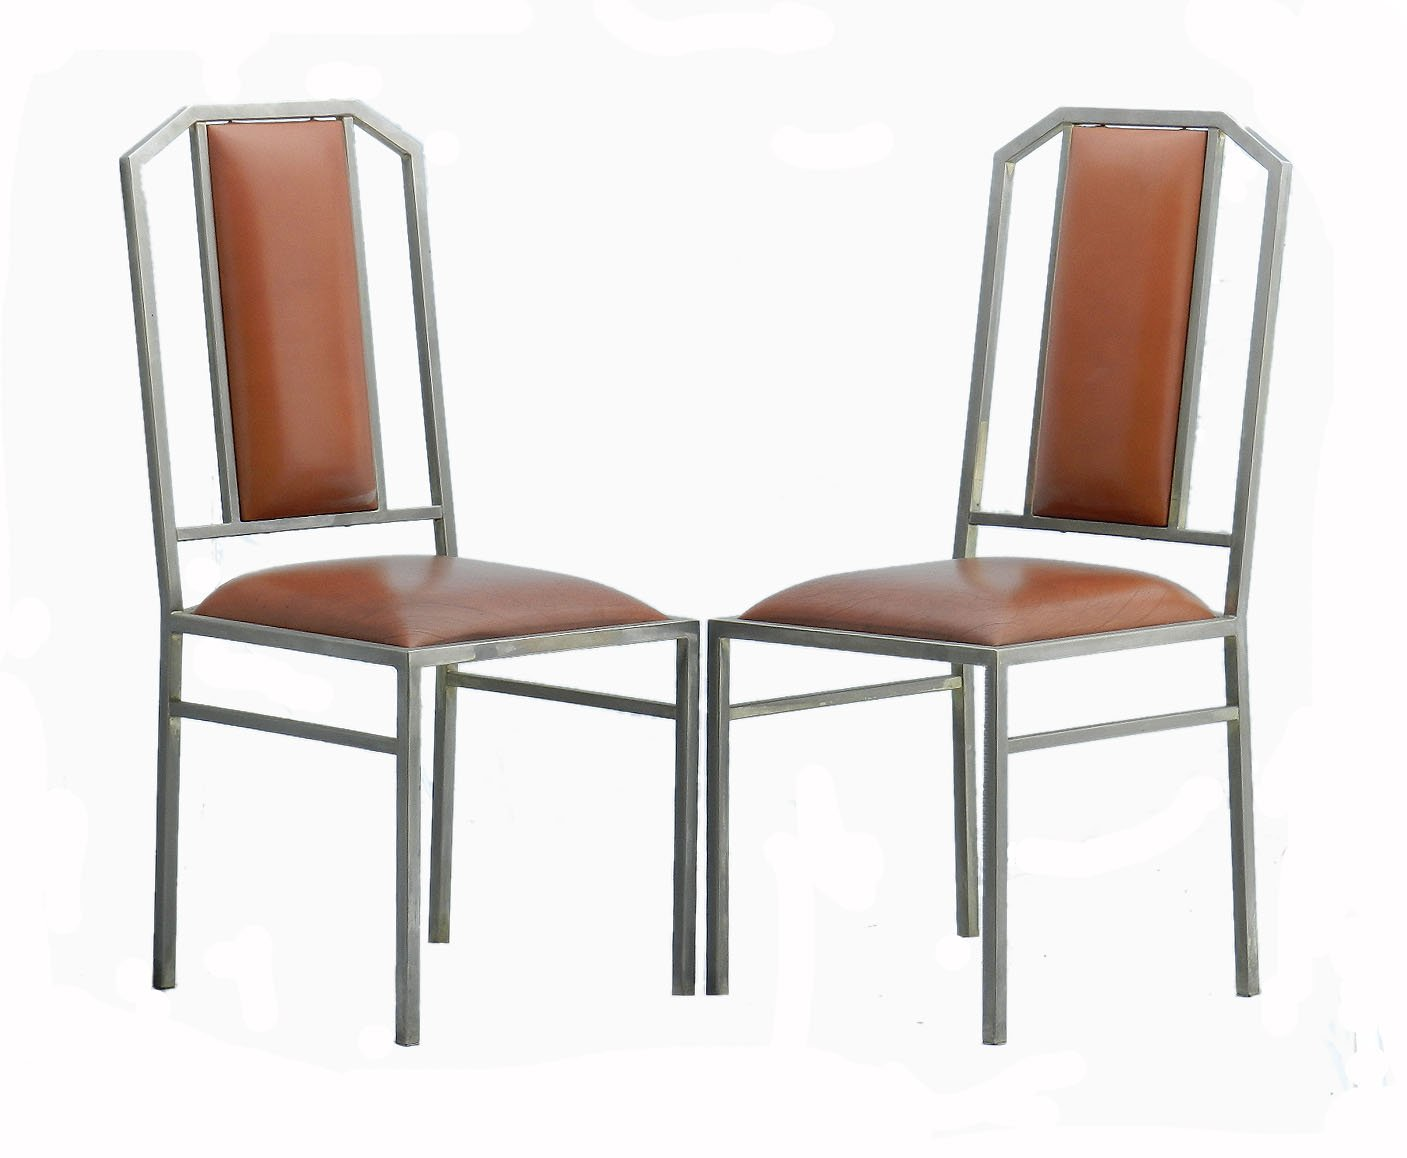 Vintage Dining Chairs In Leather U0026 Brushed Metal From Maison Jansen, Set Of  4